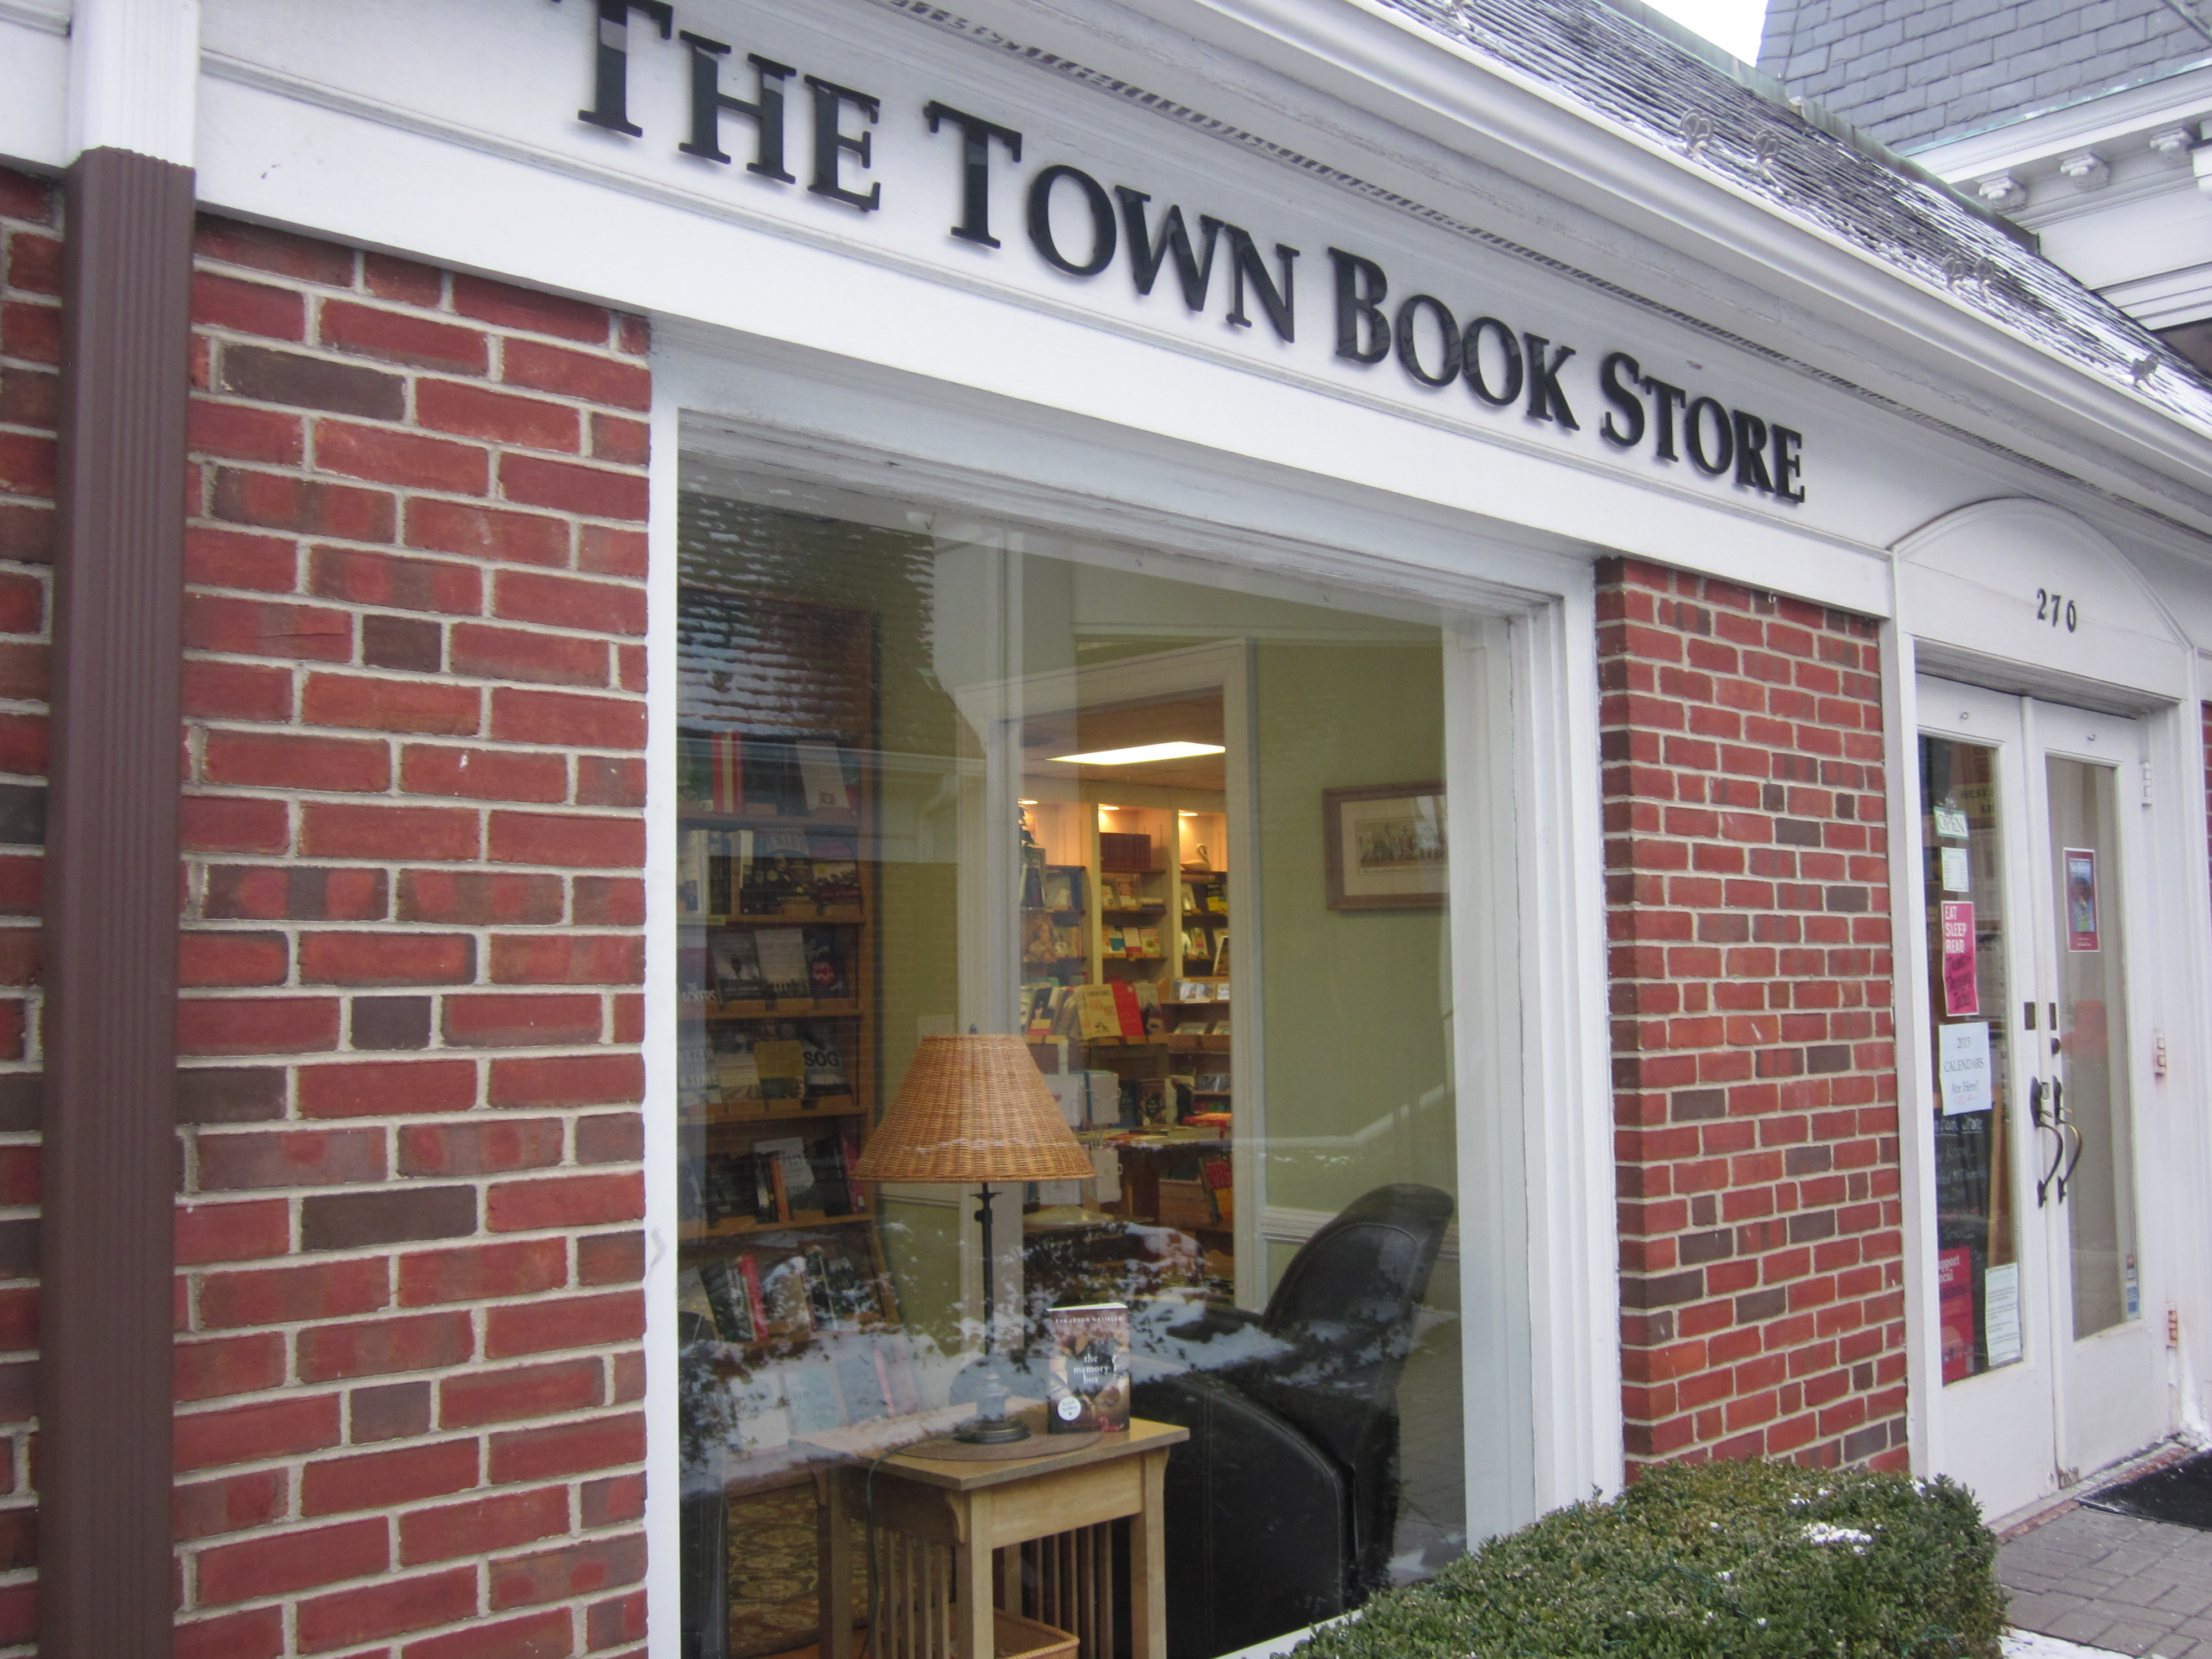 the-town-book-store-westfield-nj-1